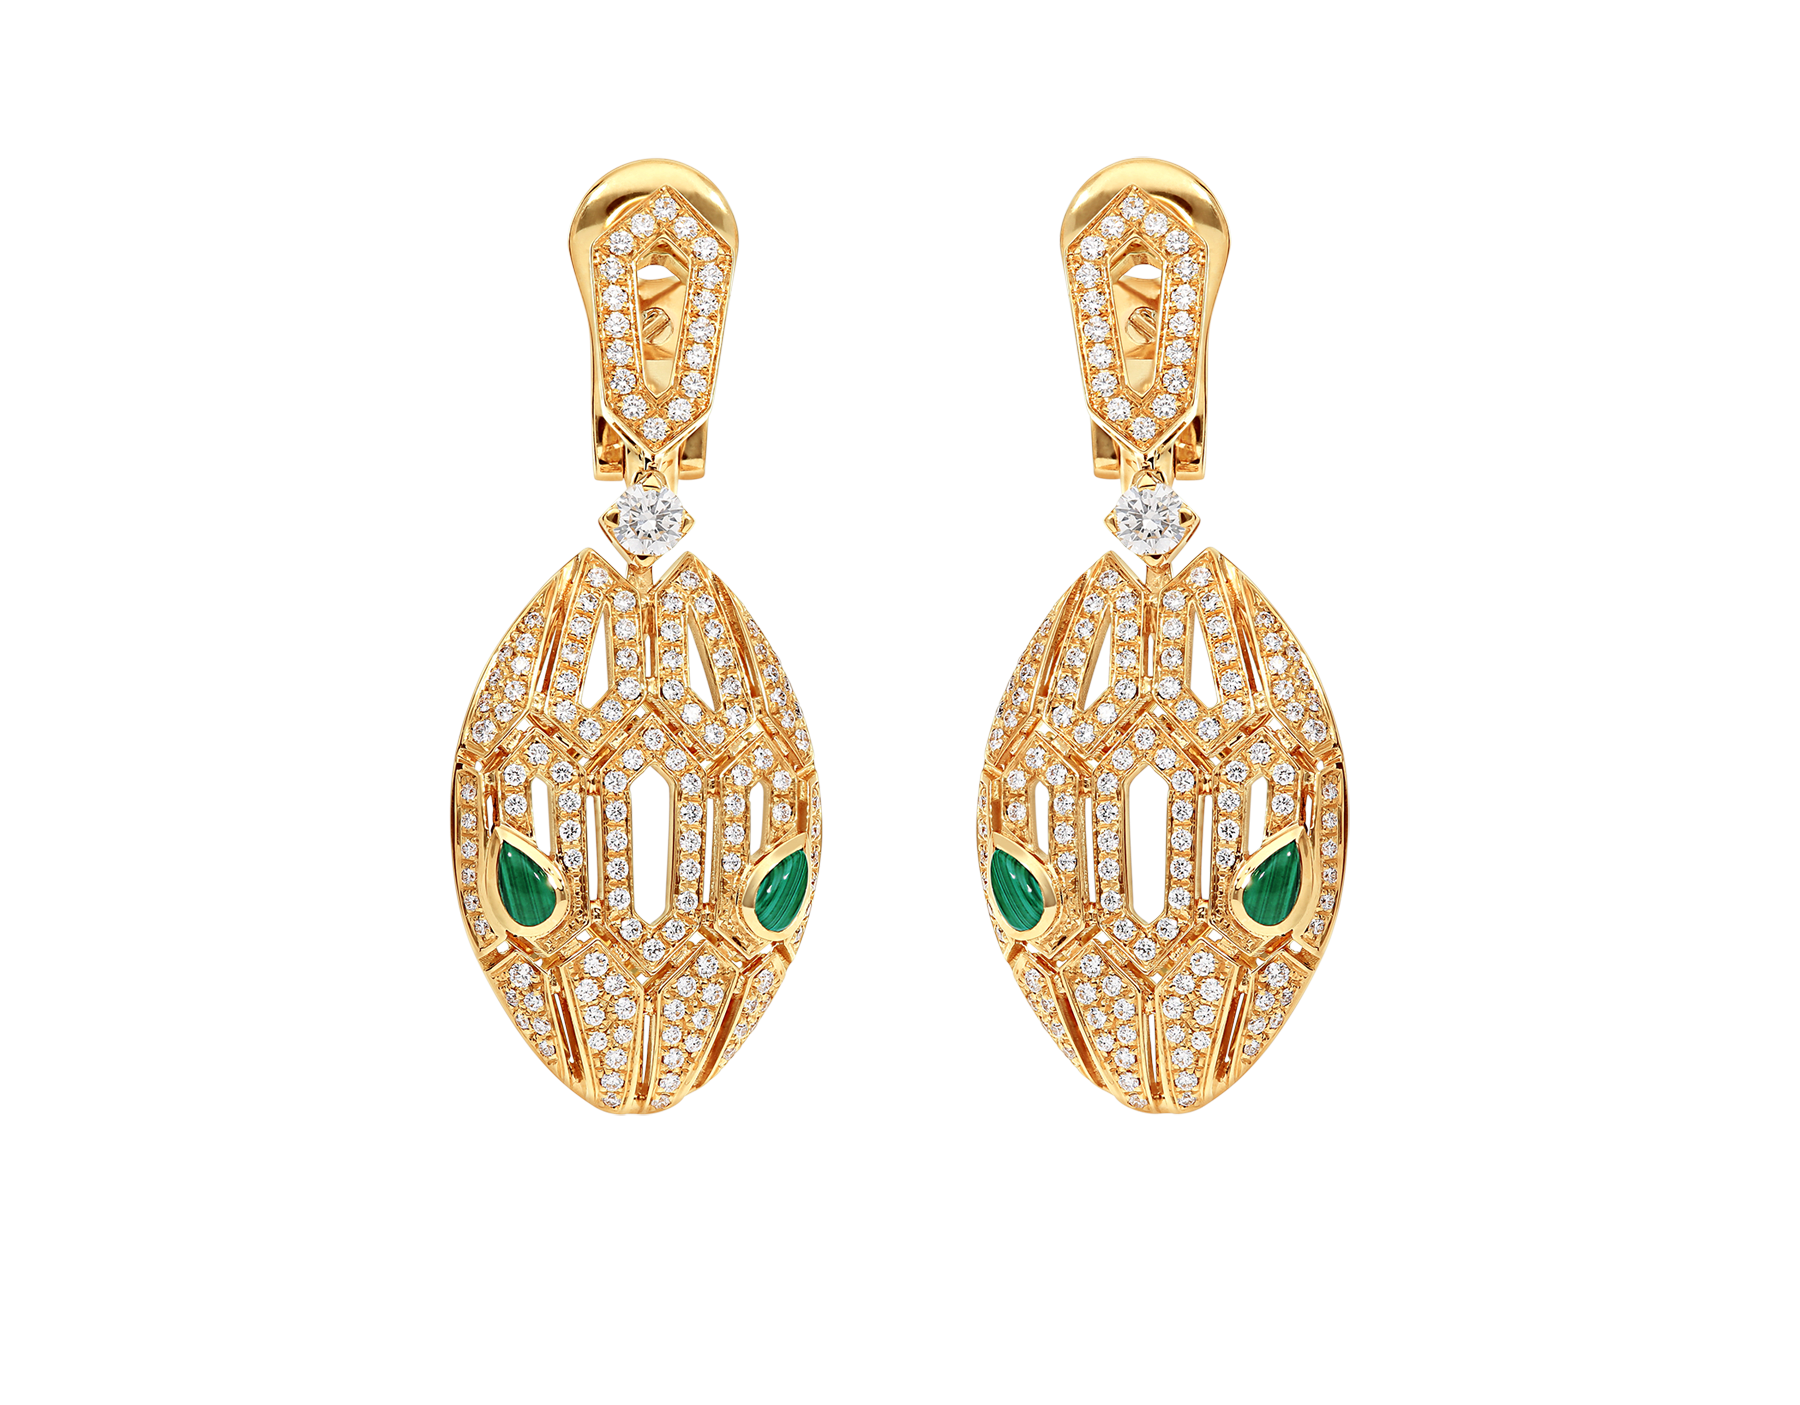 Boucles d'oreilles Serpenti en or jaune 18 K, yeux en malachite et pavé diamants 354576 image 1